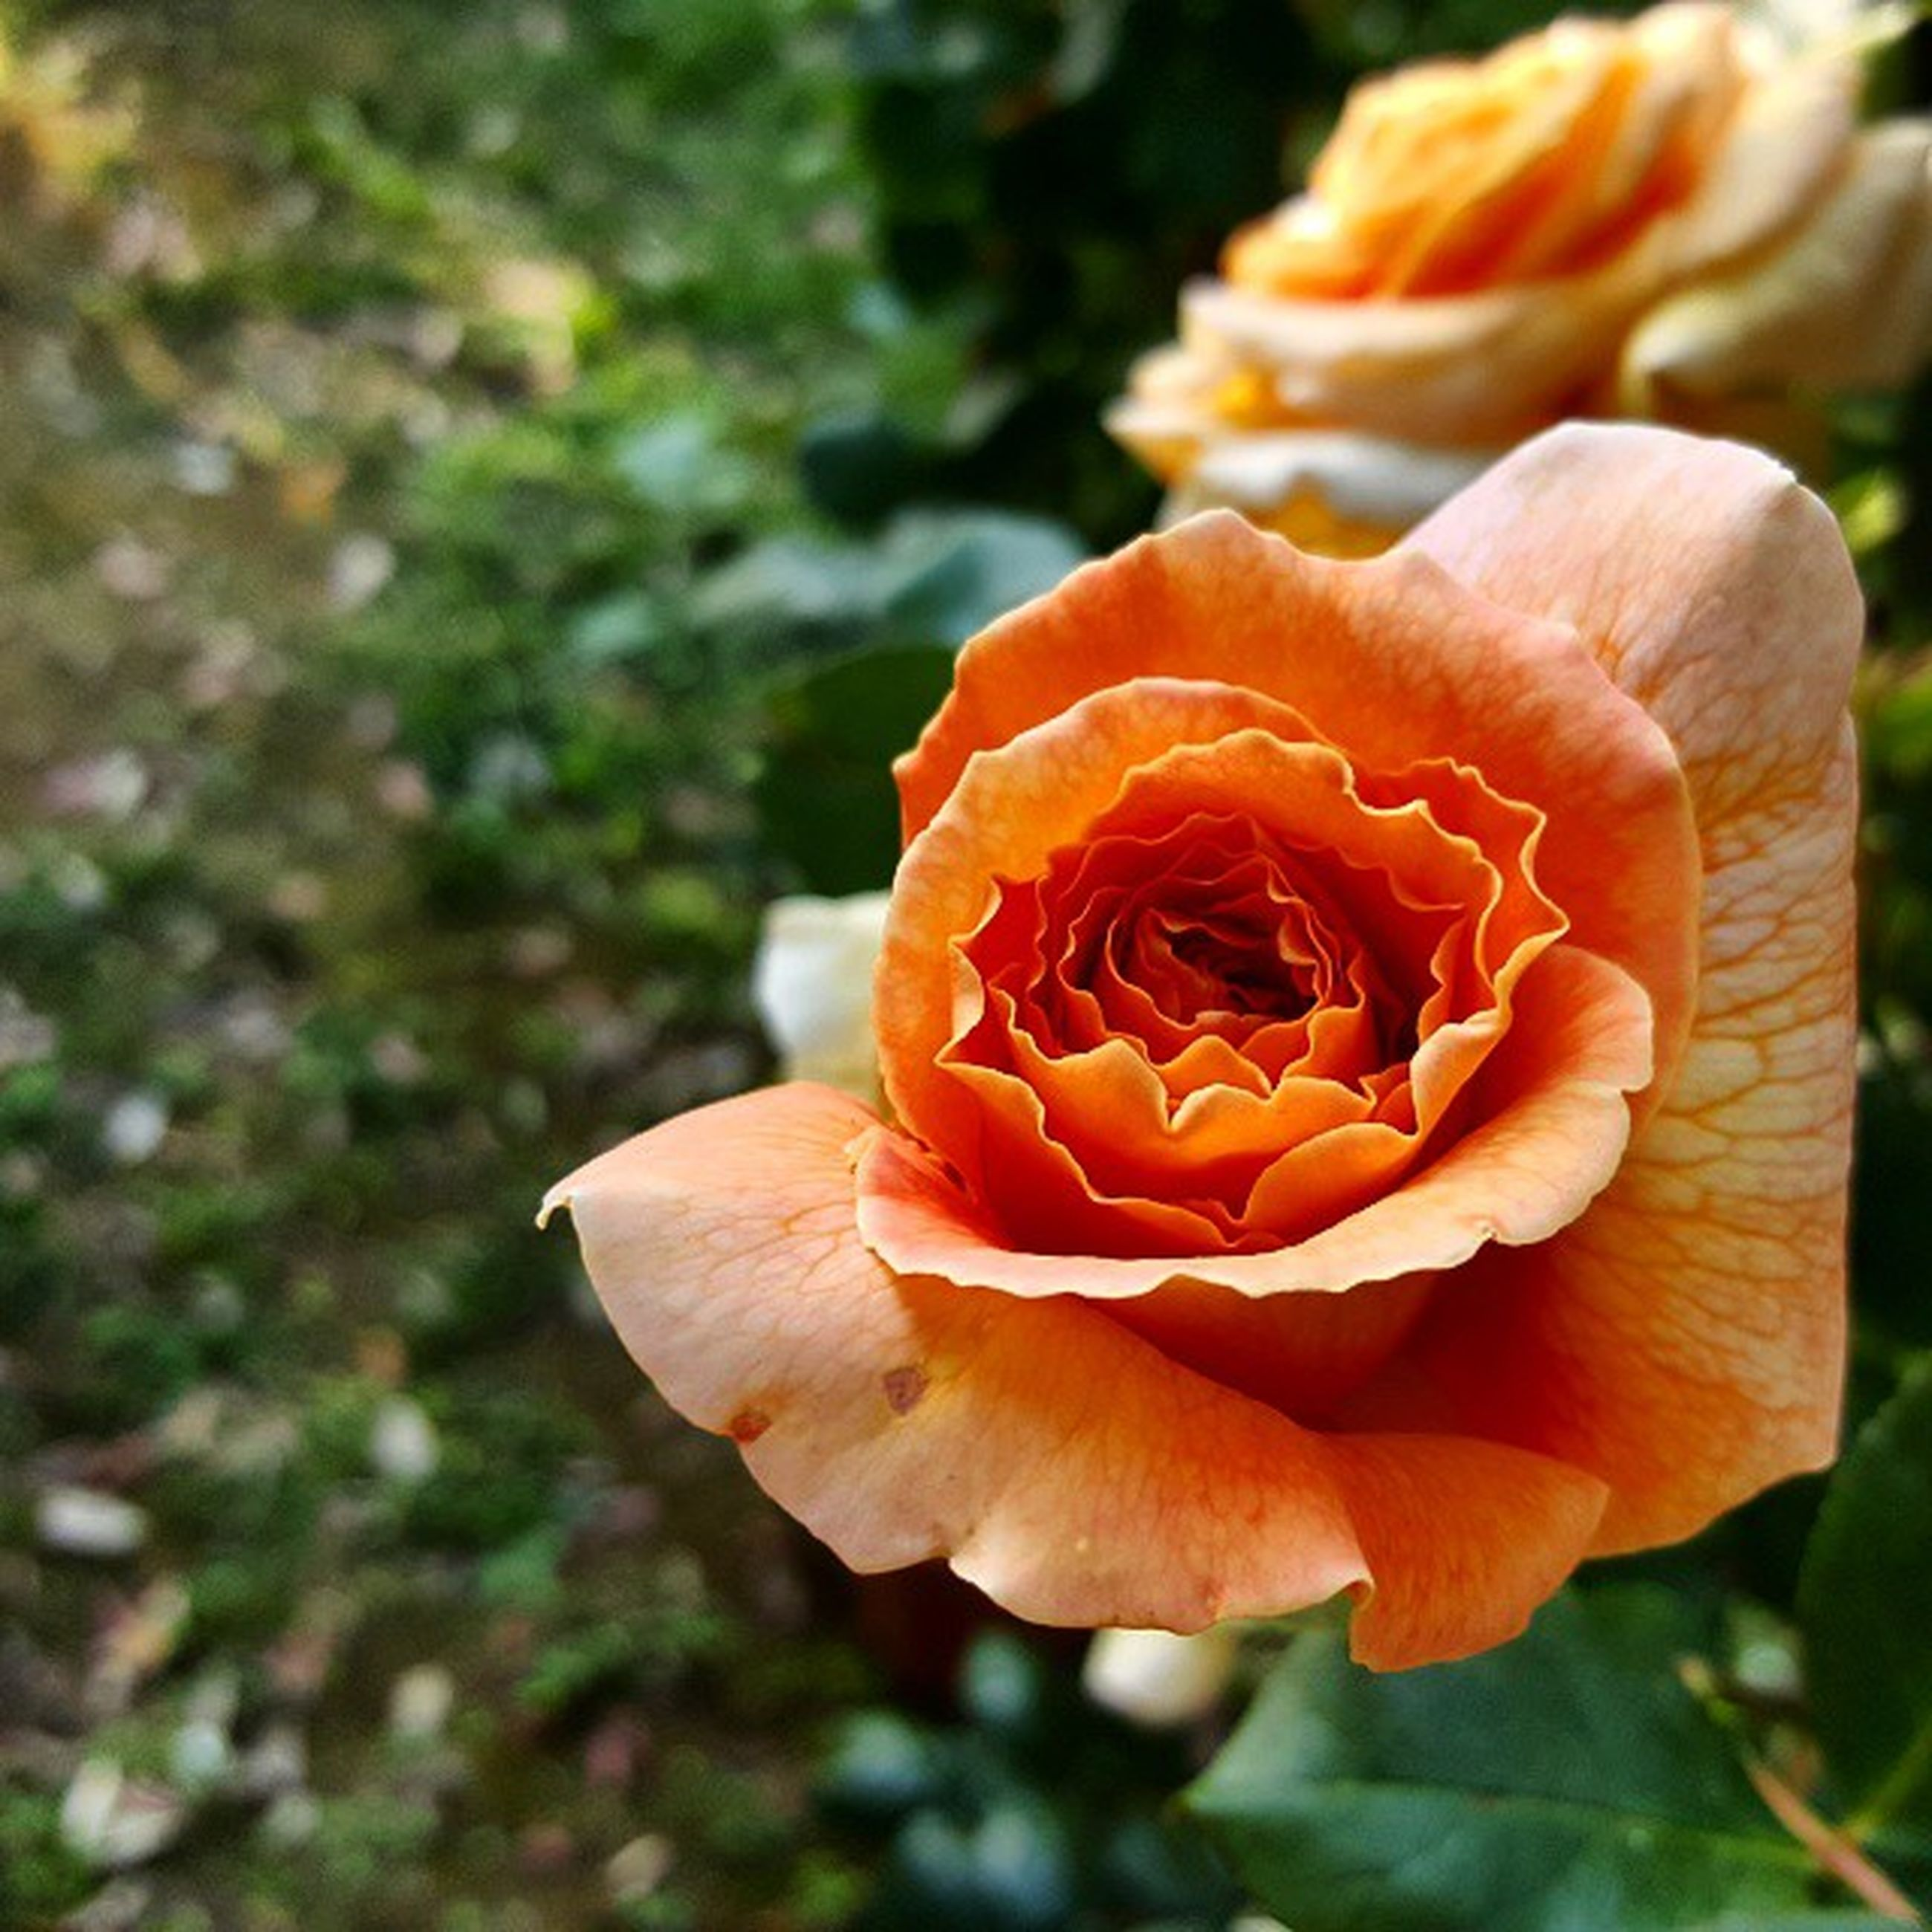 flower, petal, freshness, fragility, flower head, orange color, growth, beauty in nature, close-up, focus on foreground, nature, blooming, single flower, plant, rose - flower, no people, in bloom, outdoors, day, botany